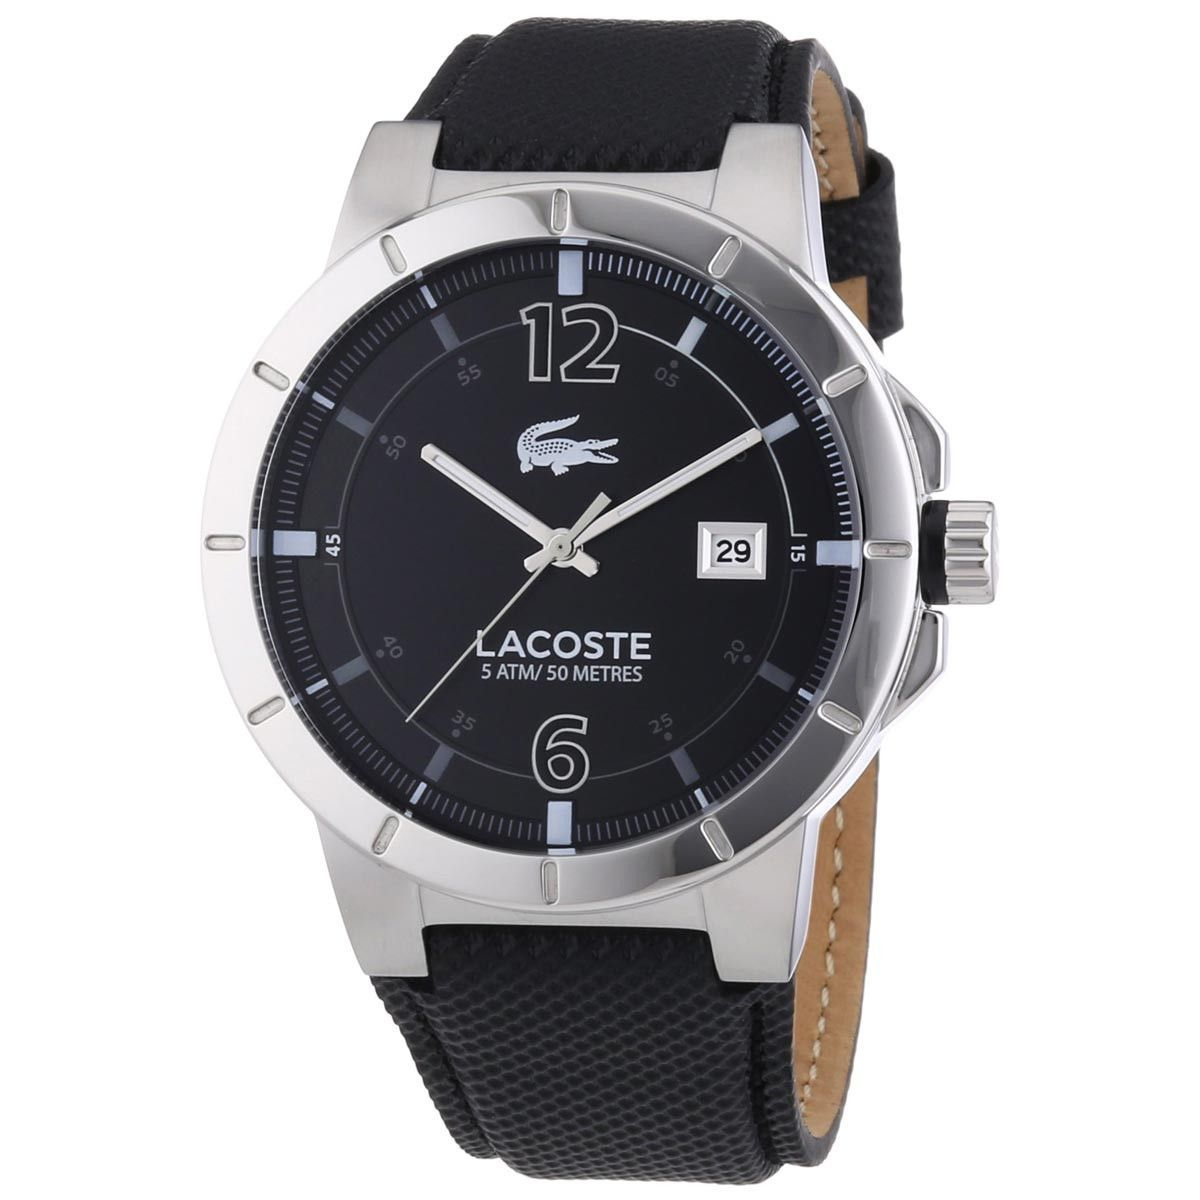 Leather Watch Lacoste Strap Black Dial Men's 2010727 Darwin 3c5AR4Ljq